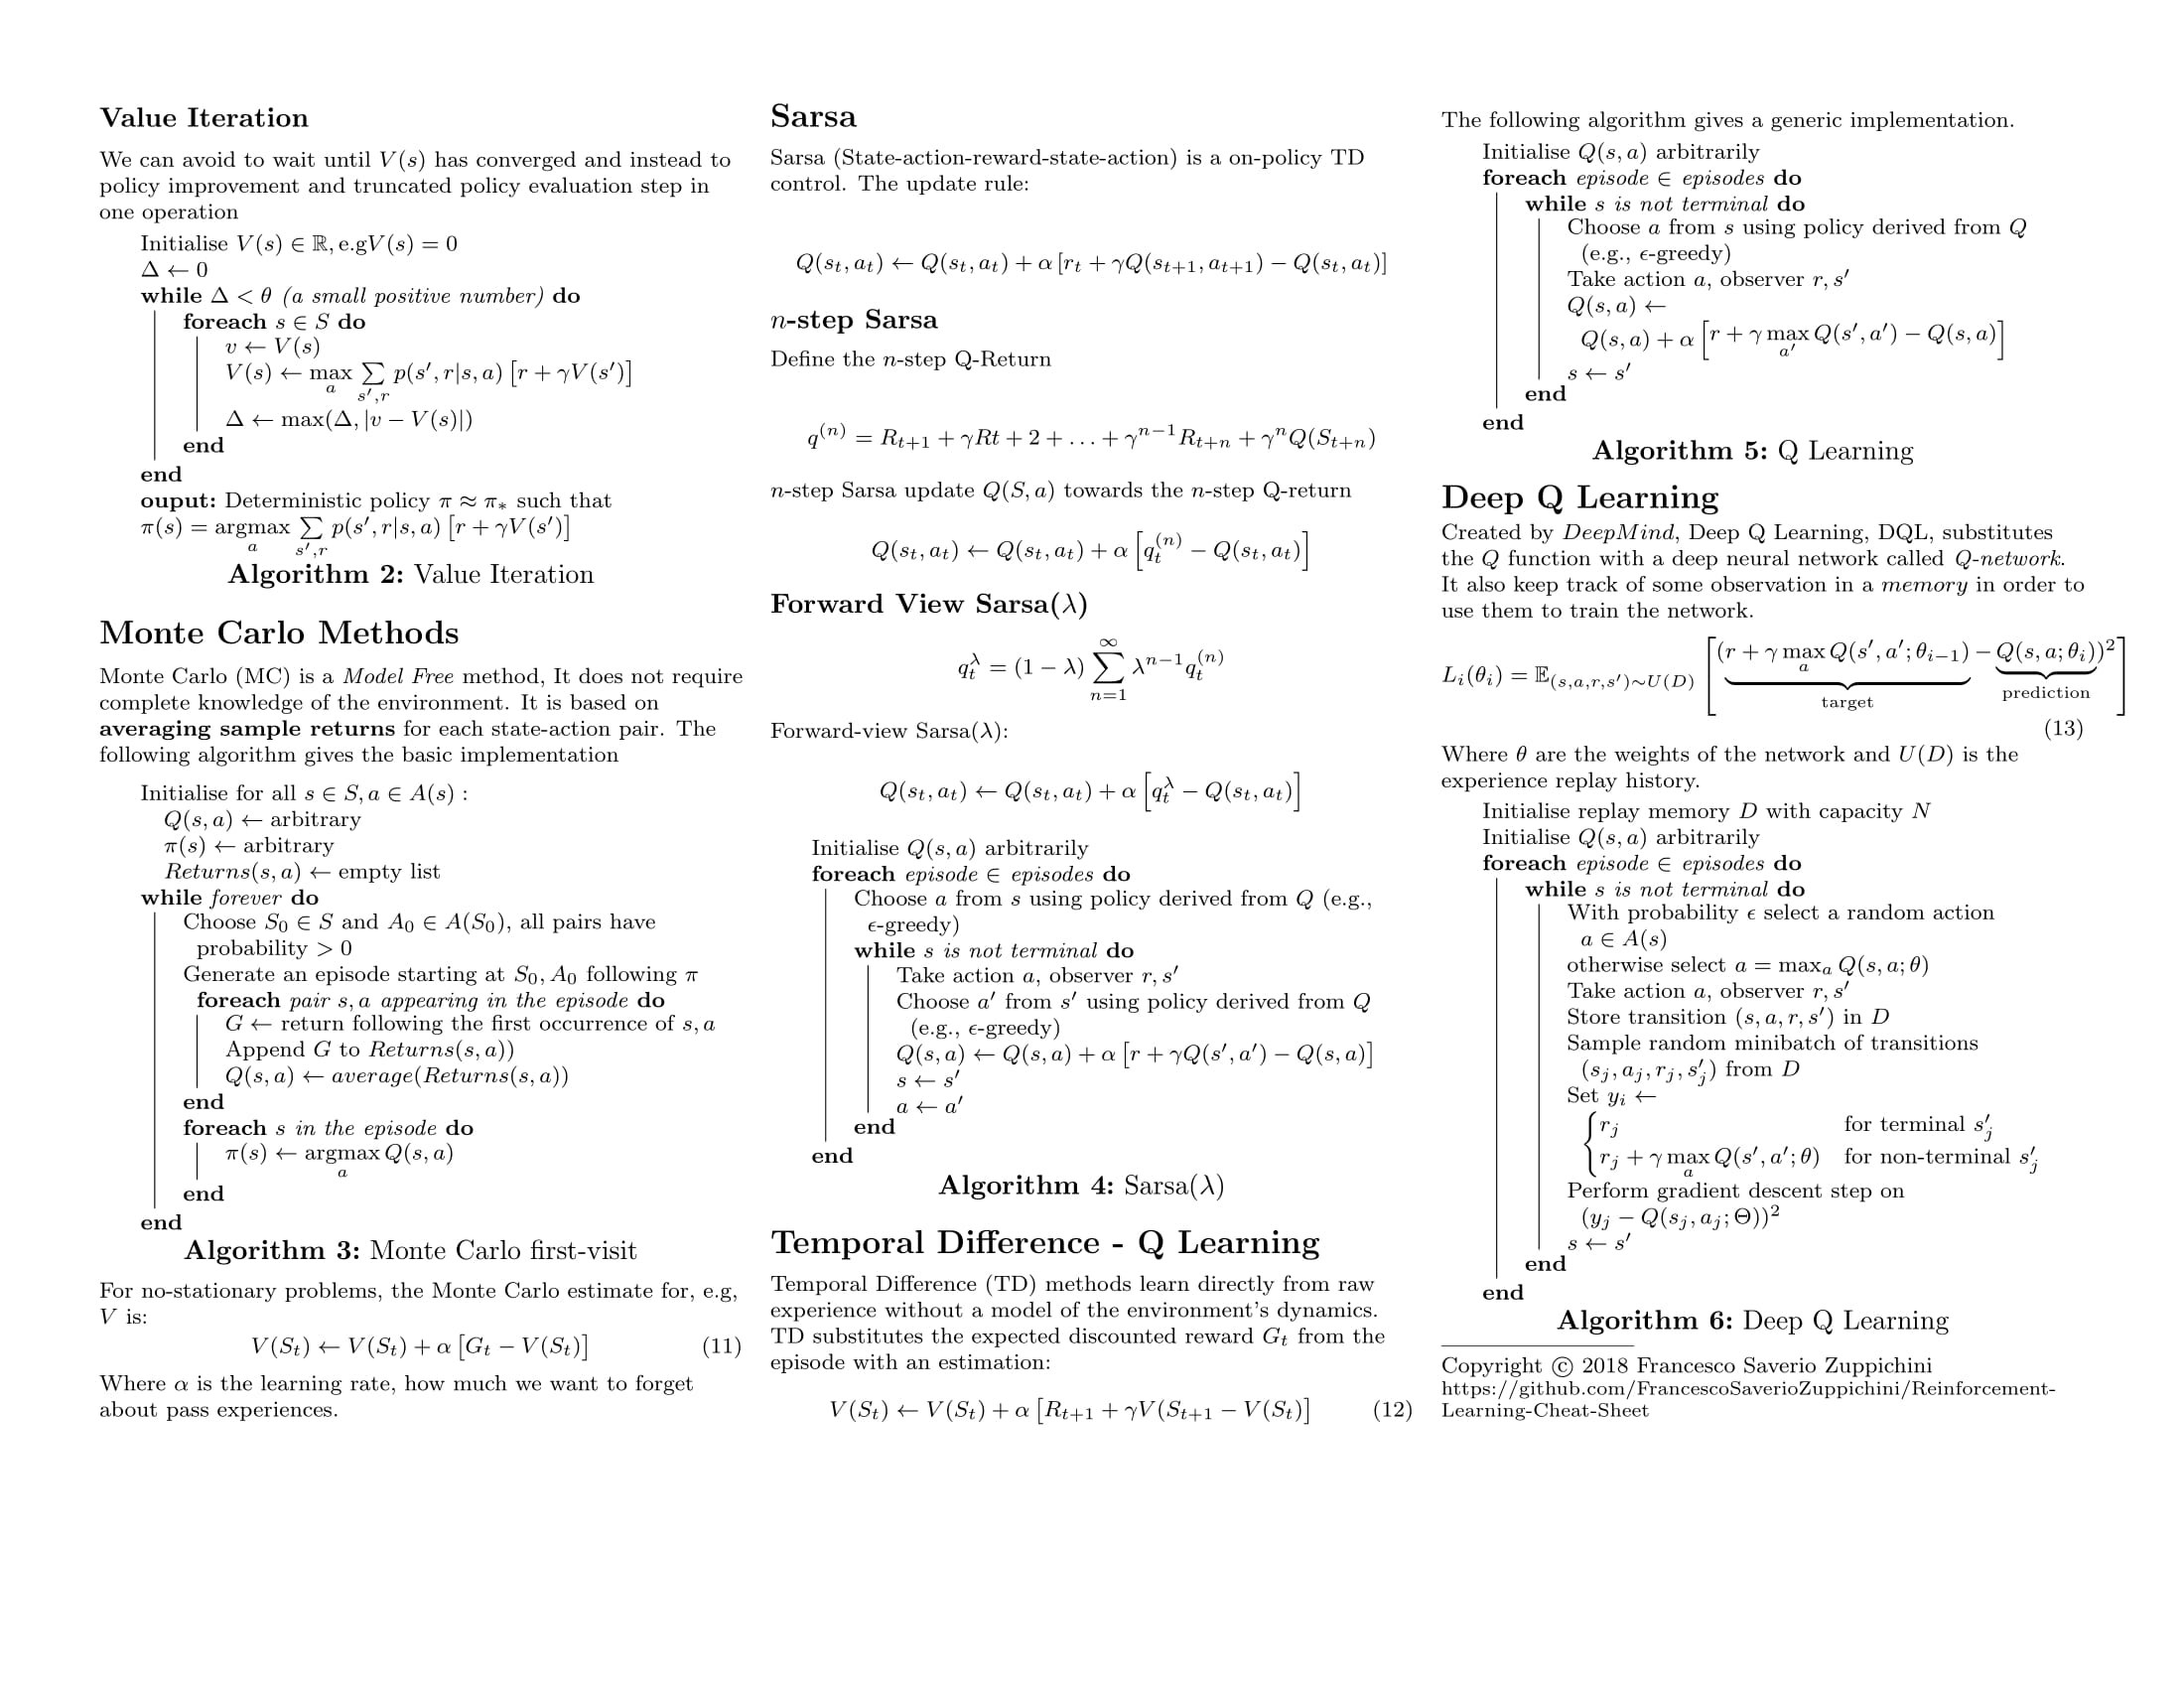 Reinforcement Learning Cheat Sheet - Towards Data Science